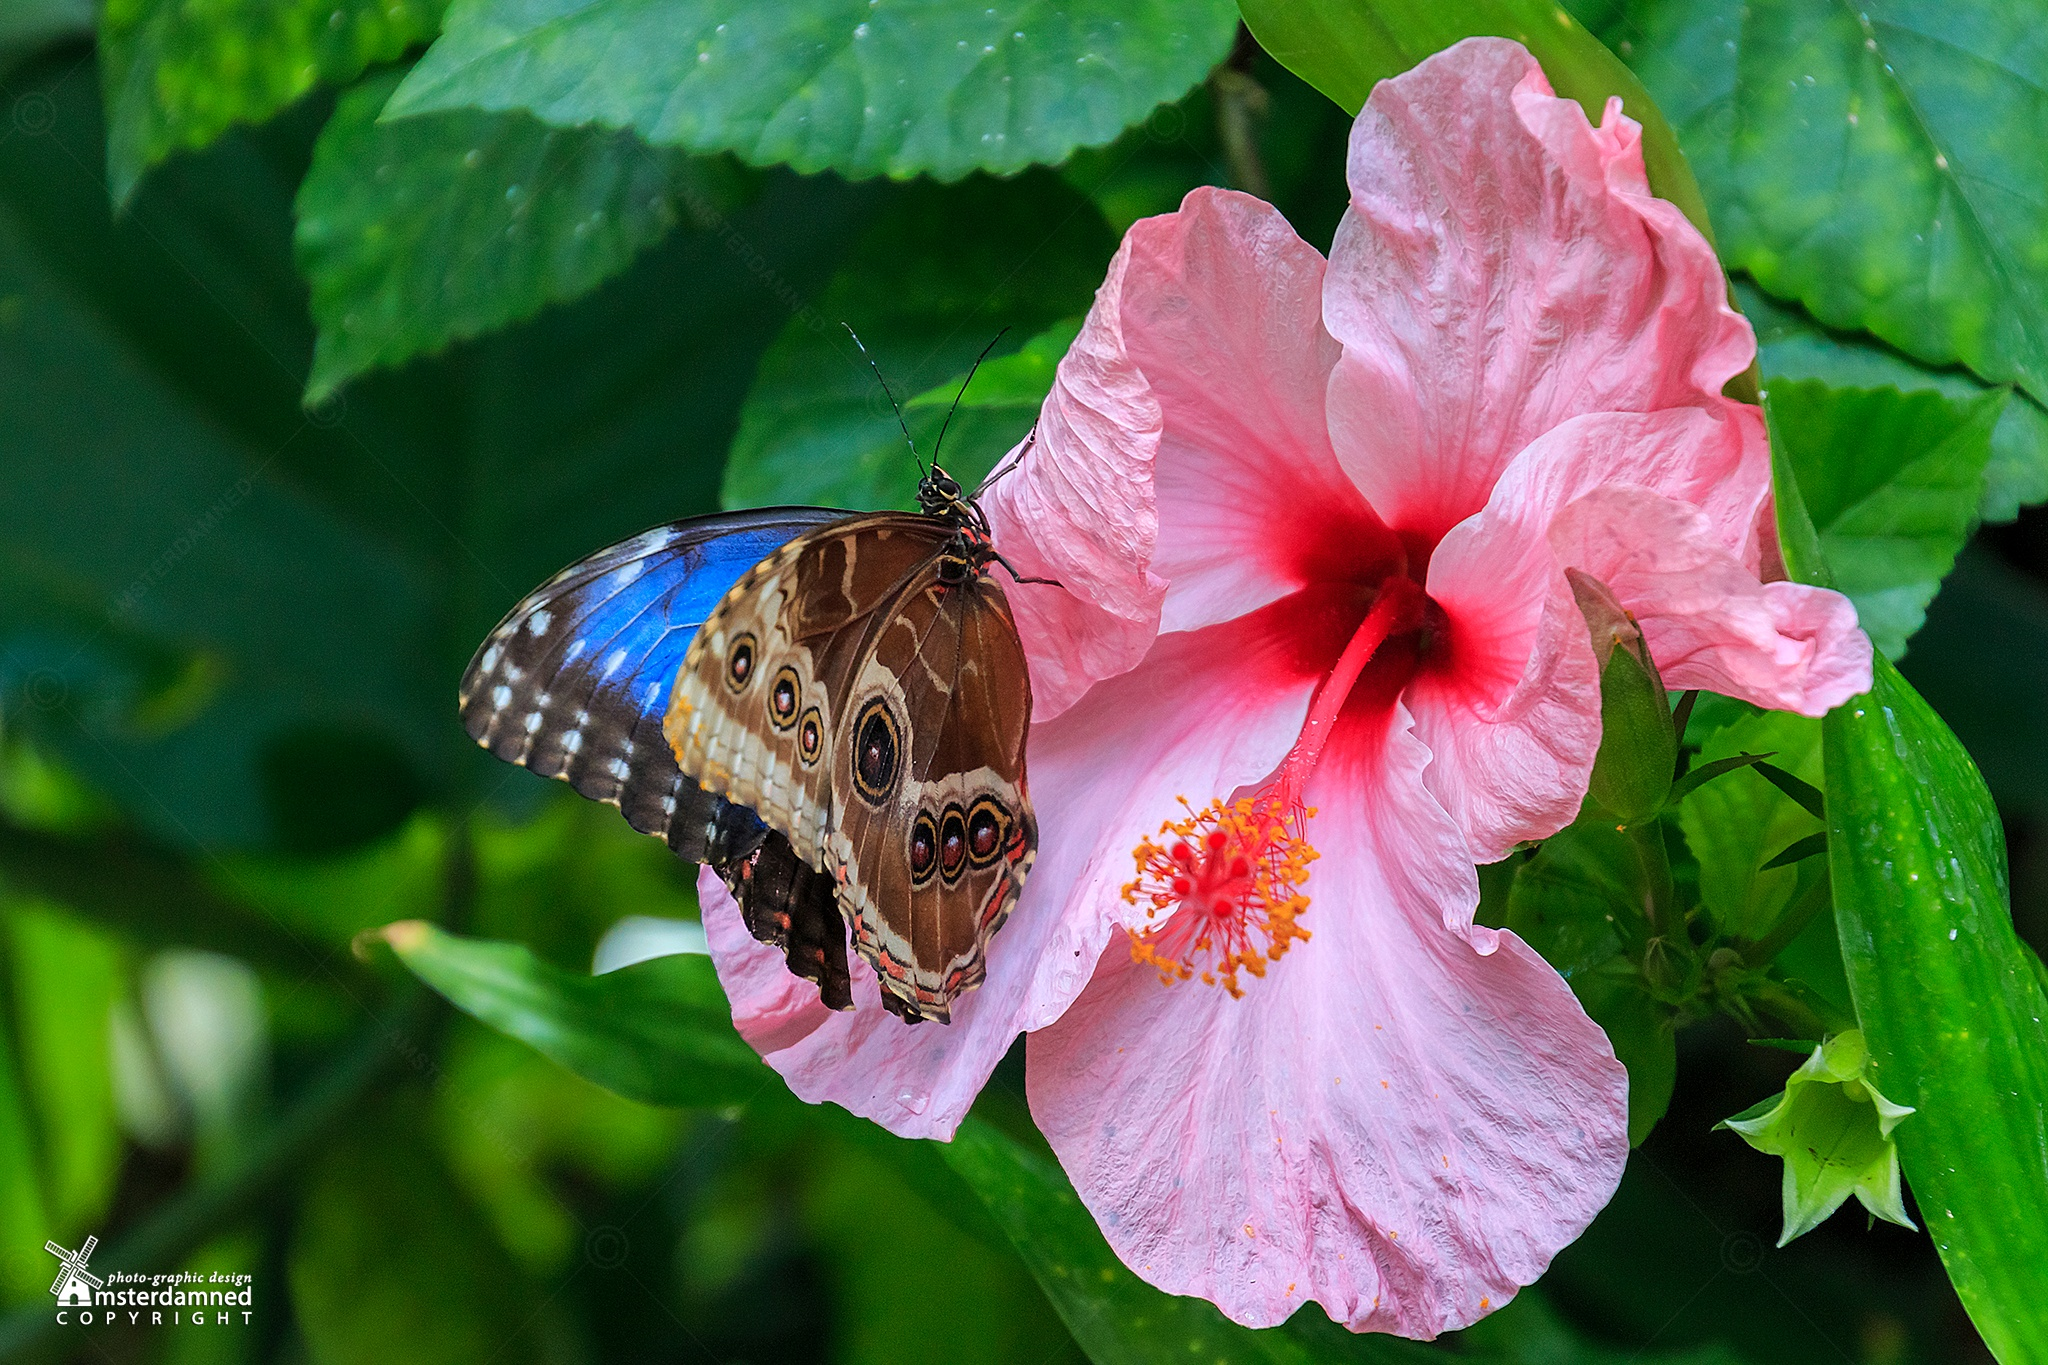 Photo in Nature #amsterdamned #leidschendam #holland #netherlands #the netherlands #zuid holland #zuid-holland #vlinders aan de vliet #butterfly park #butterfly #macro #nature #flower #insect #chinese hibiscus #tropical flower #tropical plant #pink flower #pink tropical flower #blue morpho #hibiscus rosa-sinensis #chinese hibiscuschina rose #hawaiian hibiscus #shoeblackplant #plant #tropical hibiscus #pink flowering plant #flowering plant #morpho peleides #blue butterfly